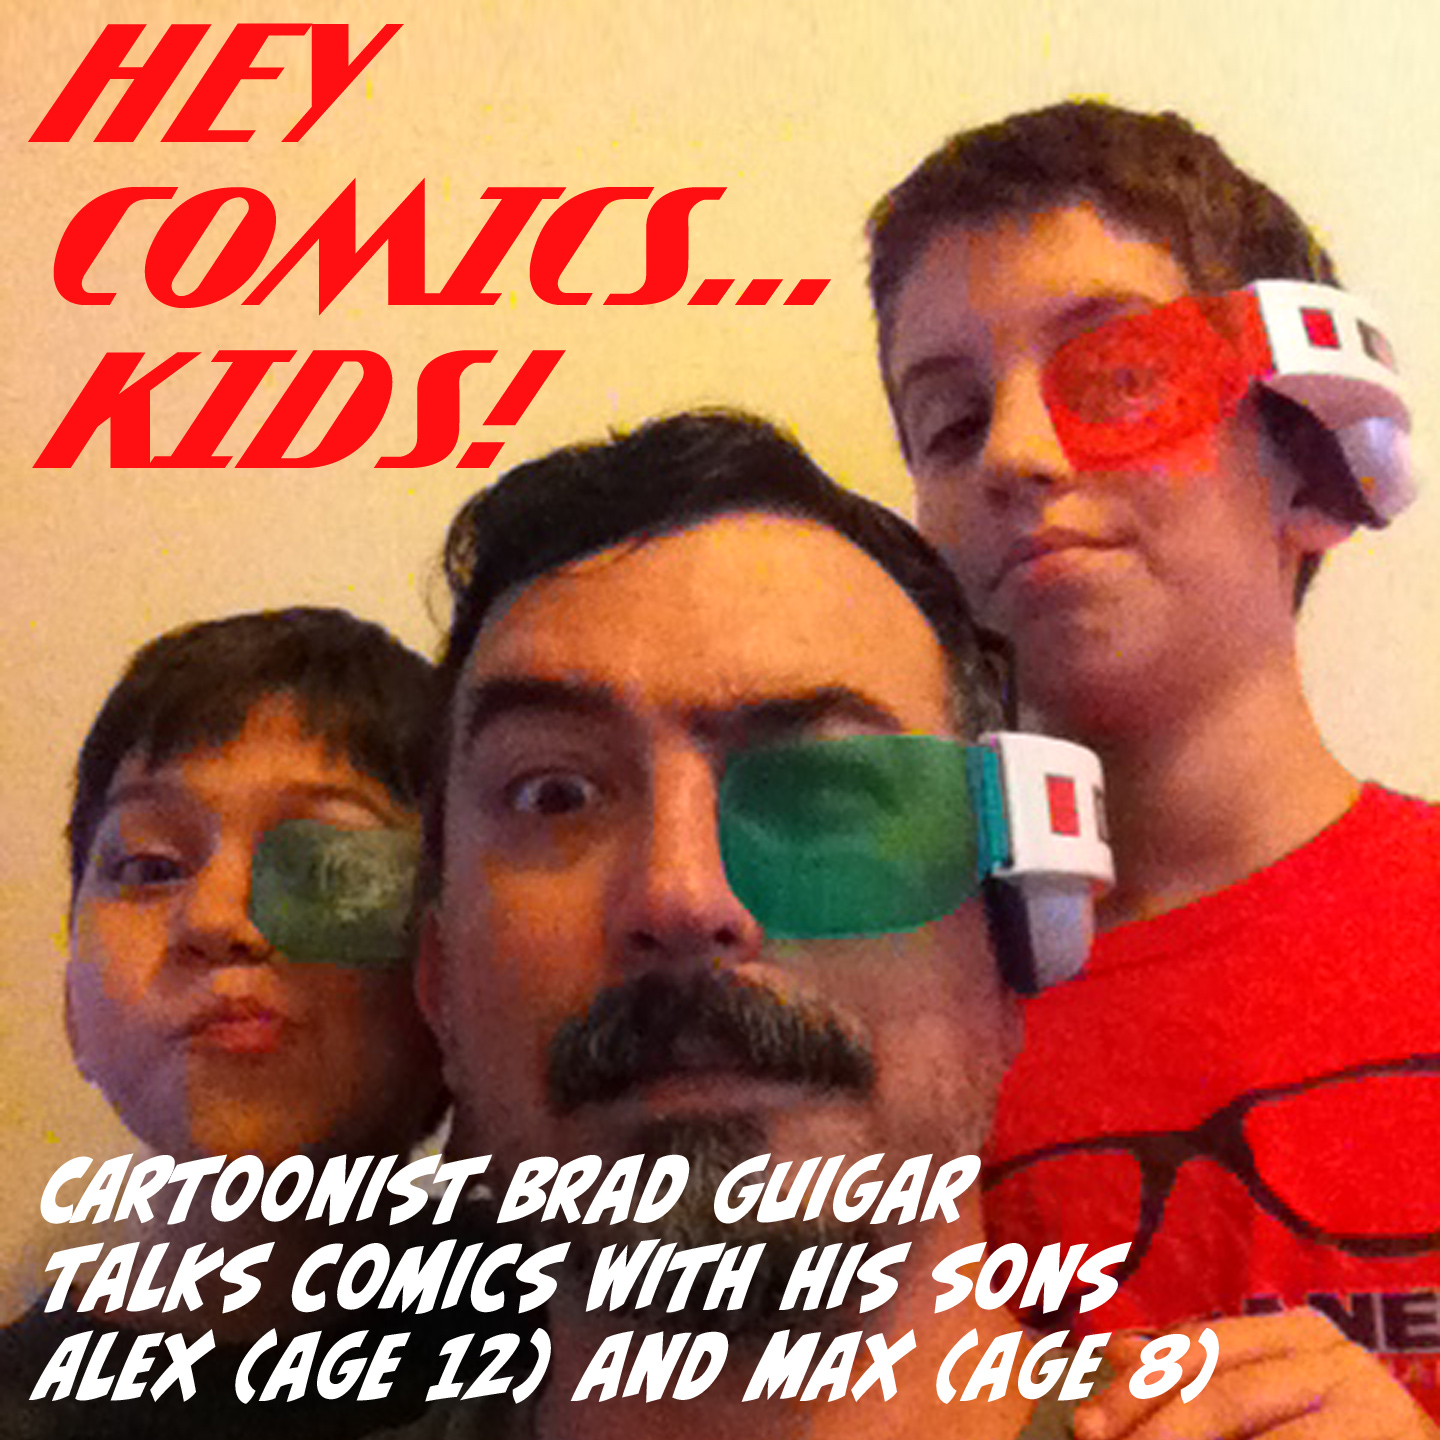 Evil Inc » Hey Comics — Kids!